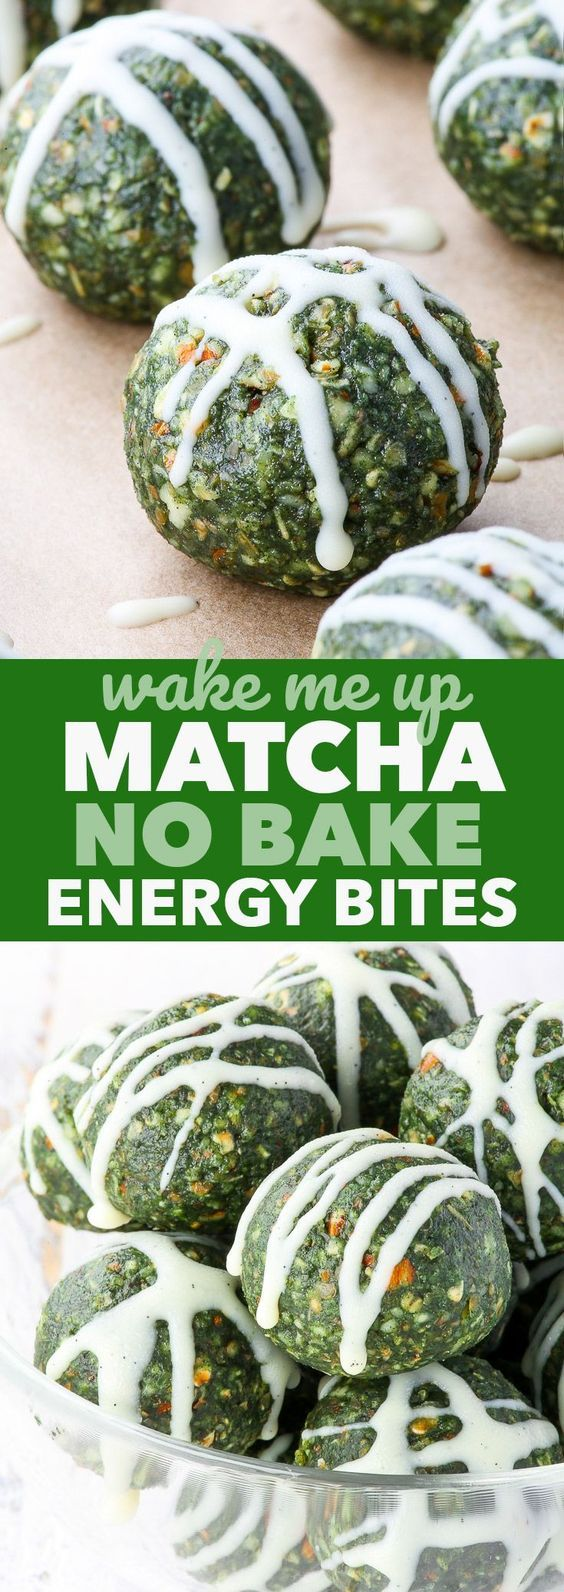 Matcha No Bake Energy Bites {gluten, dairy, egg, peanut, soy & refined sugar free, vegan, paleo} - These matcha no bake energy bites make the perfect morning snack, as well as a pre workout or post workout treat. The matcha powder gives a gentle caffeine kick, while the rest of the ingredients provide a nice balance of carbs, protein and healthy fats, as well as vitamins and minerals. Gluten, dairy and refined sugar free, as well as vegan and paleo.